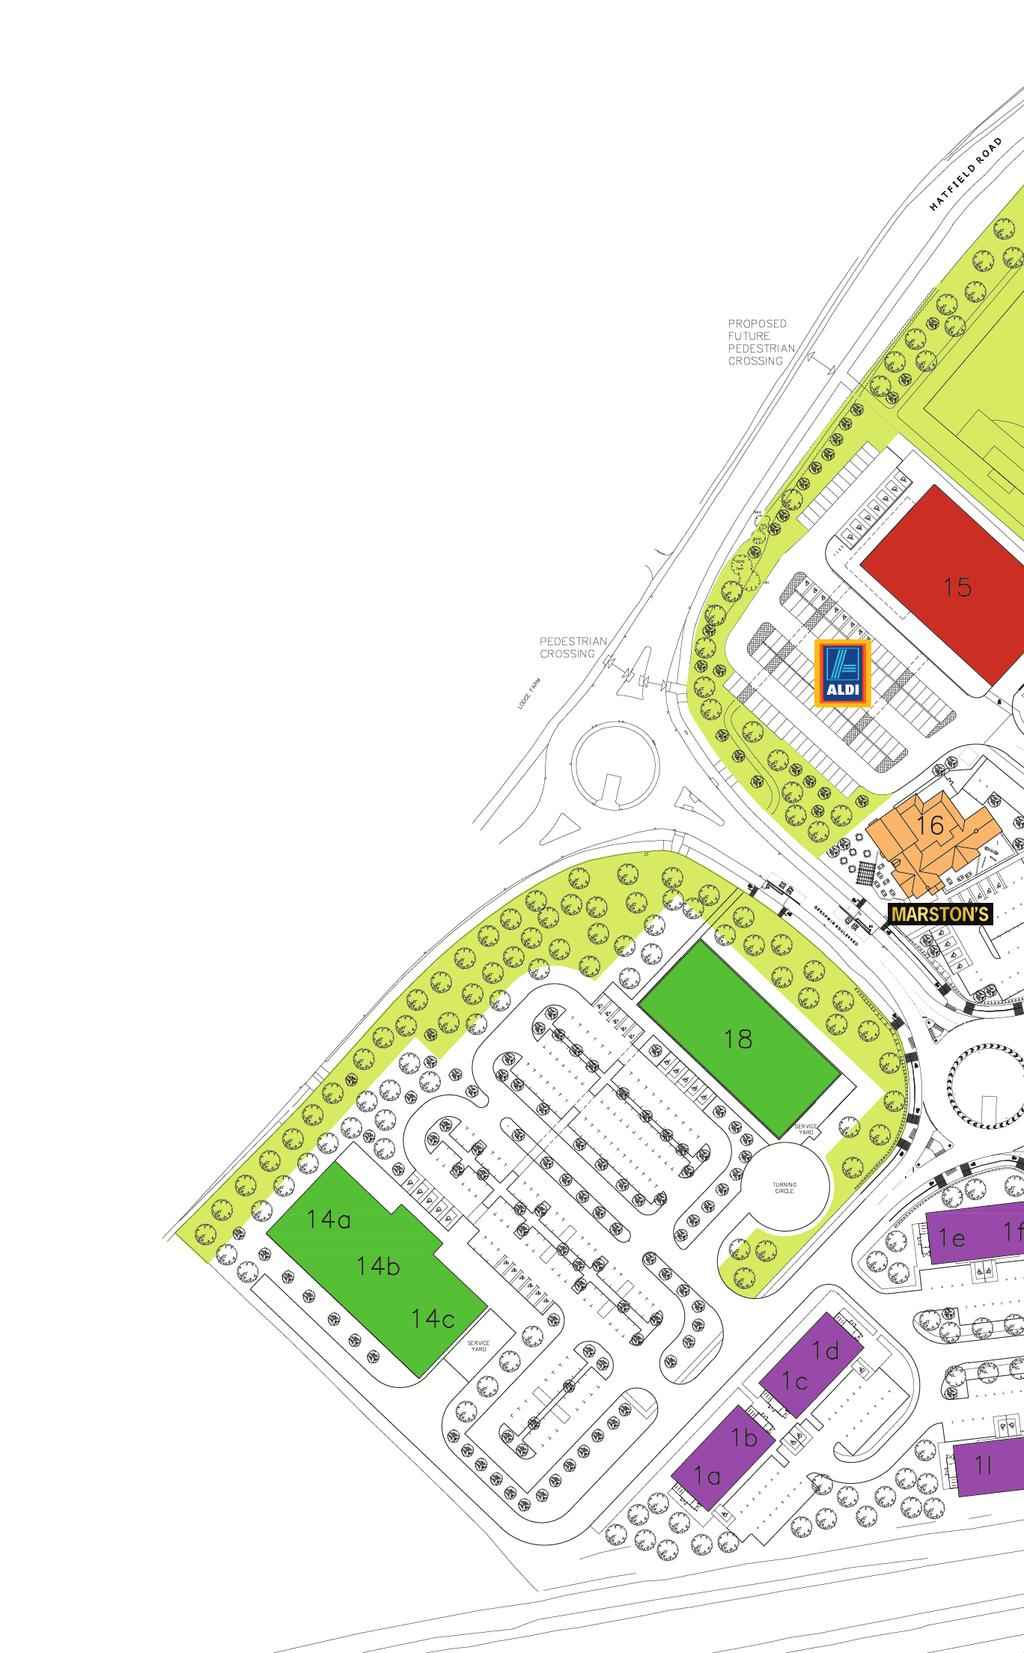 Master Plan Gershwin Park, Witham, is a multi-use development combining a new residential neighbourhood with a range of retail, office and commercial properties, together with leisure and community